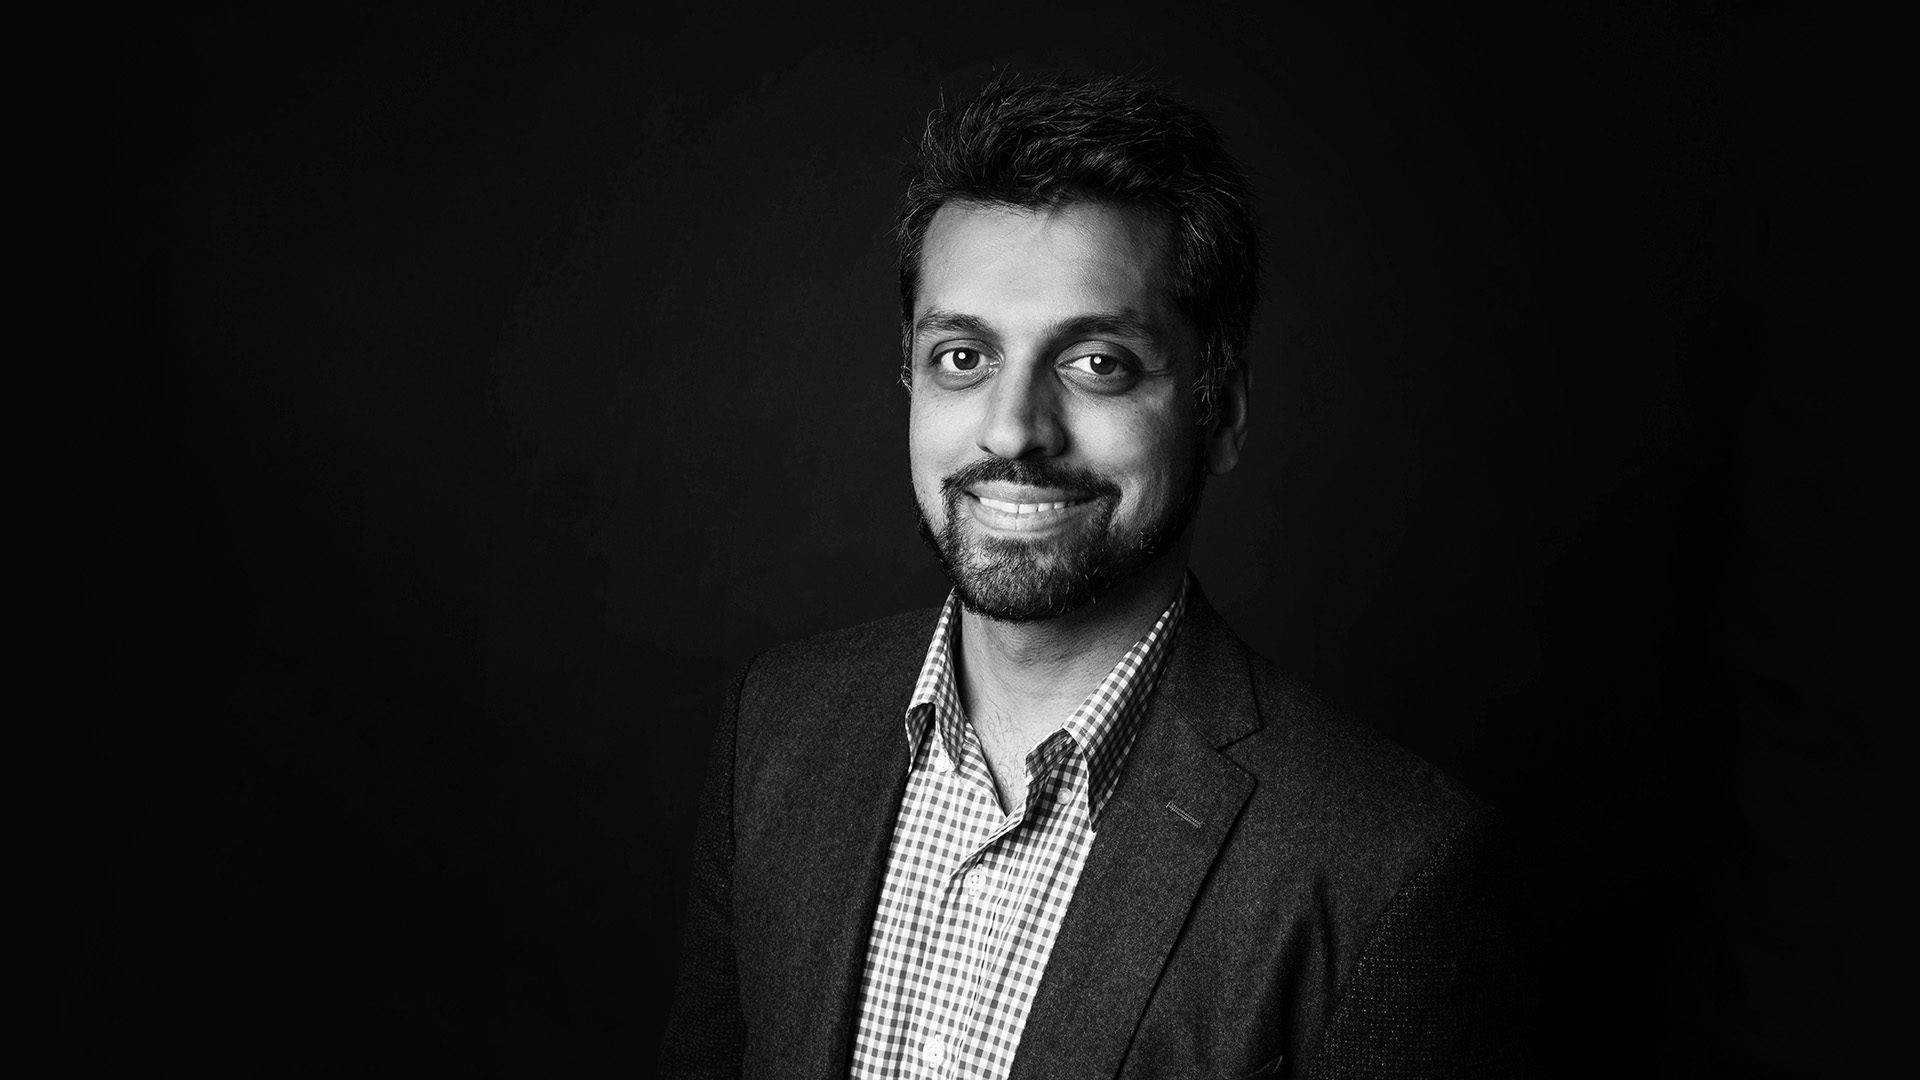 Wajahat Ali on Social Media, Echo-Chambers, and Journalism